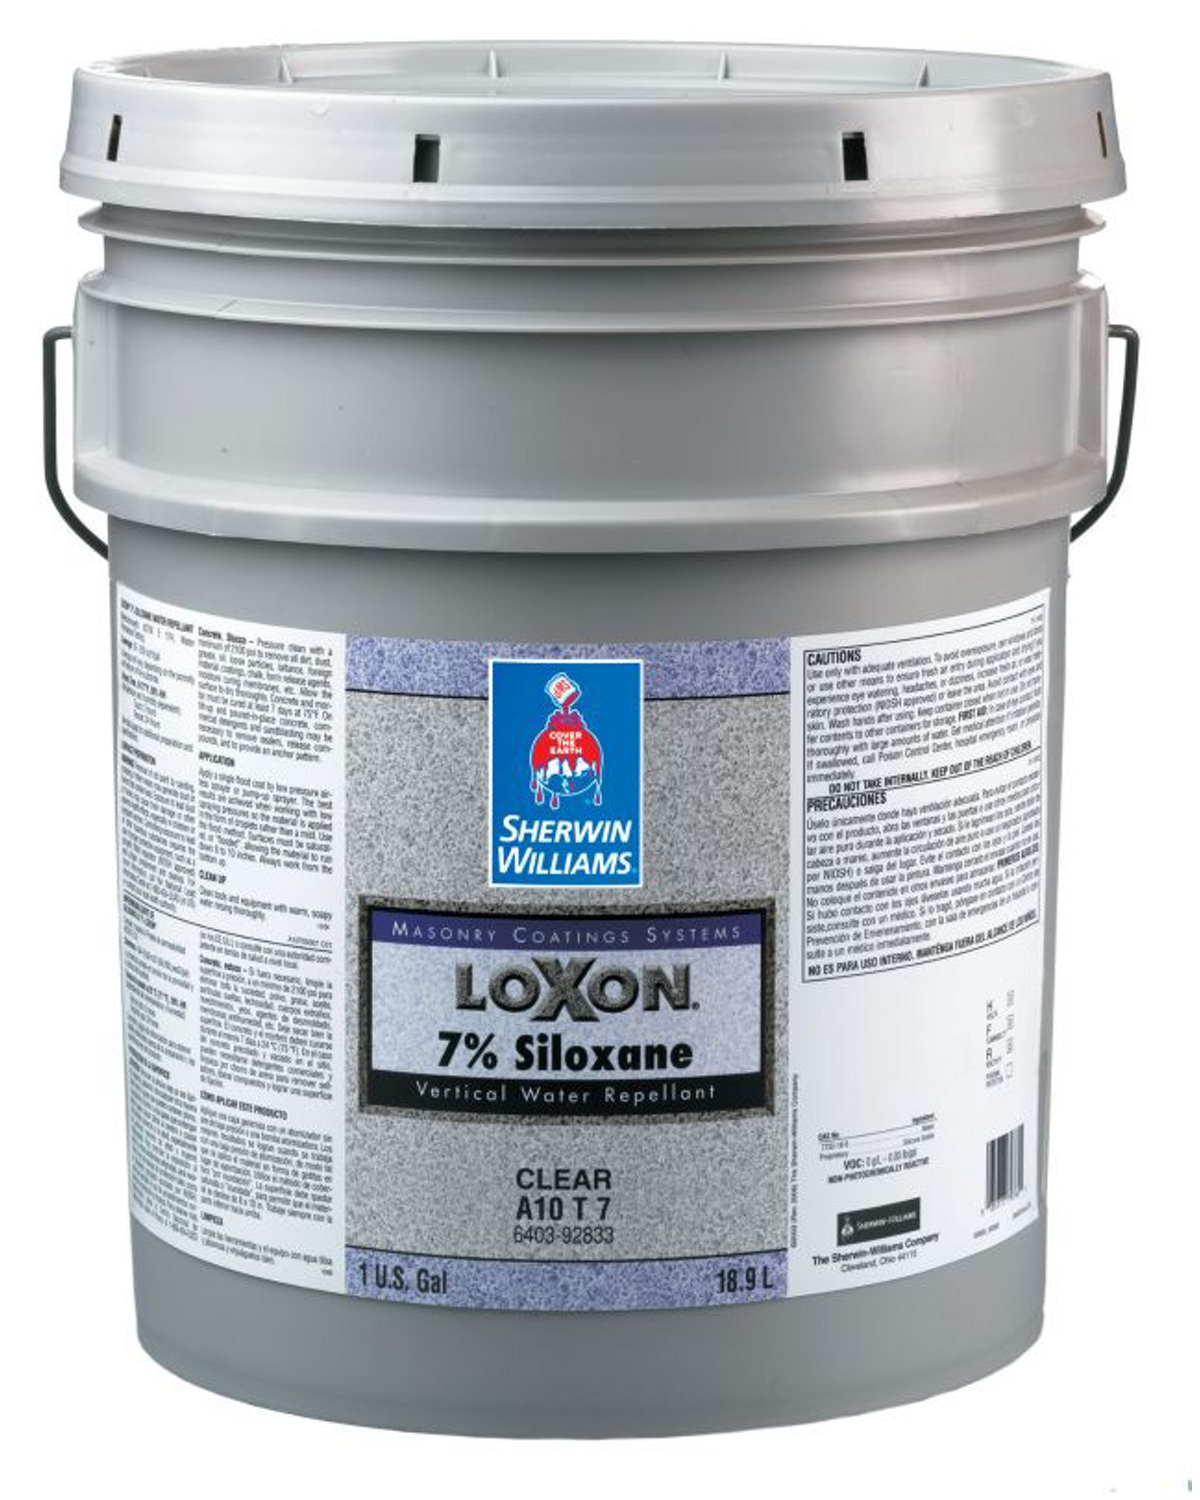 Loxon® 7% Siloxane Water Repellant